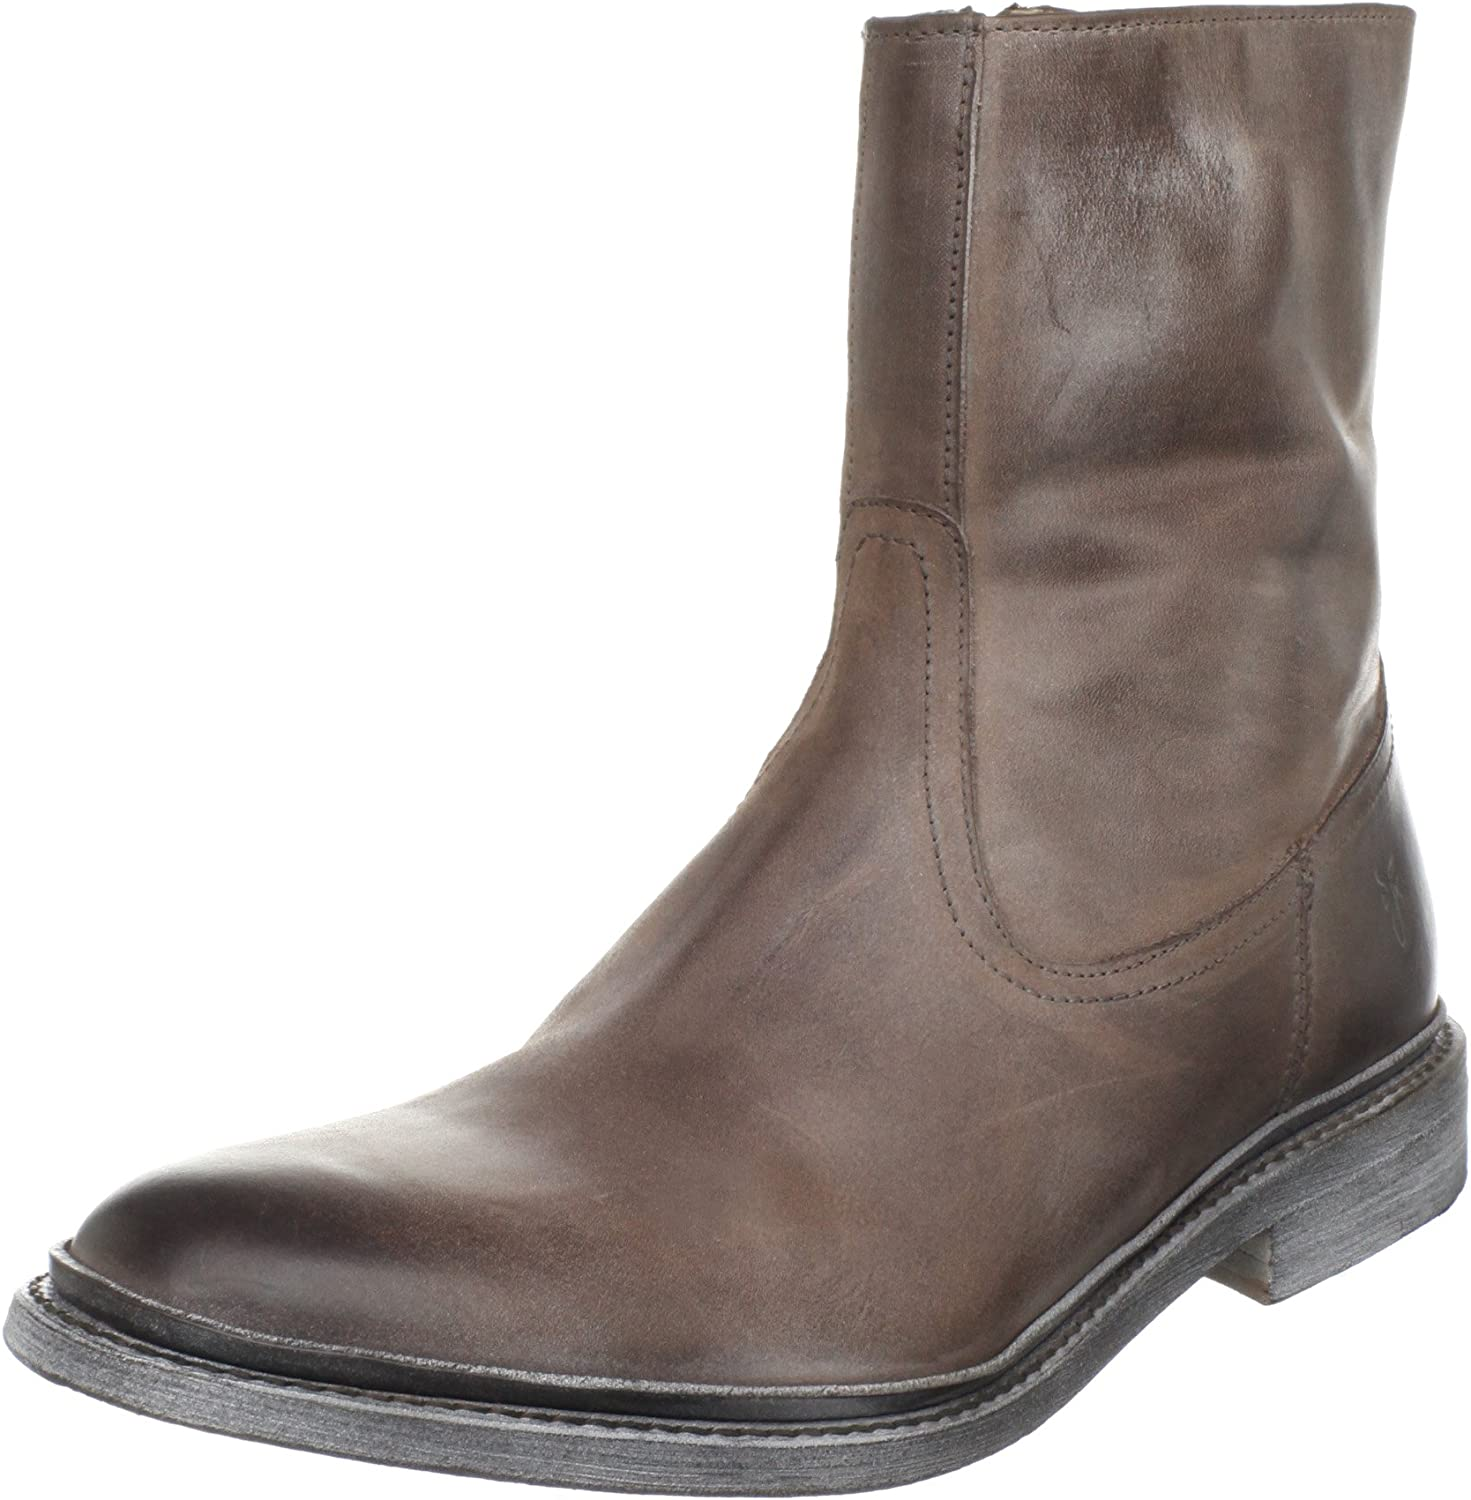 Mens Leather Zip Boots